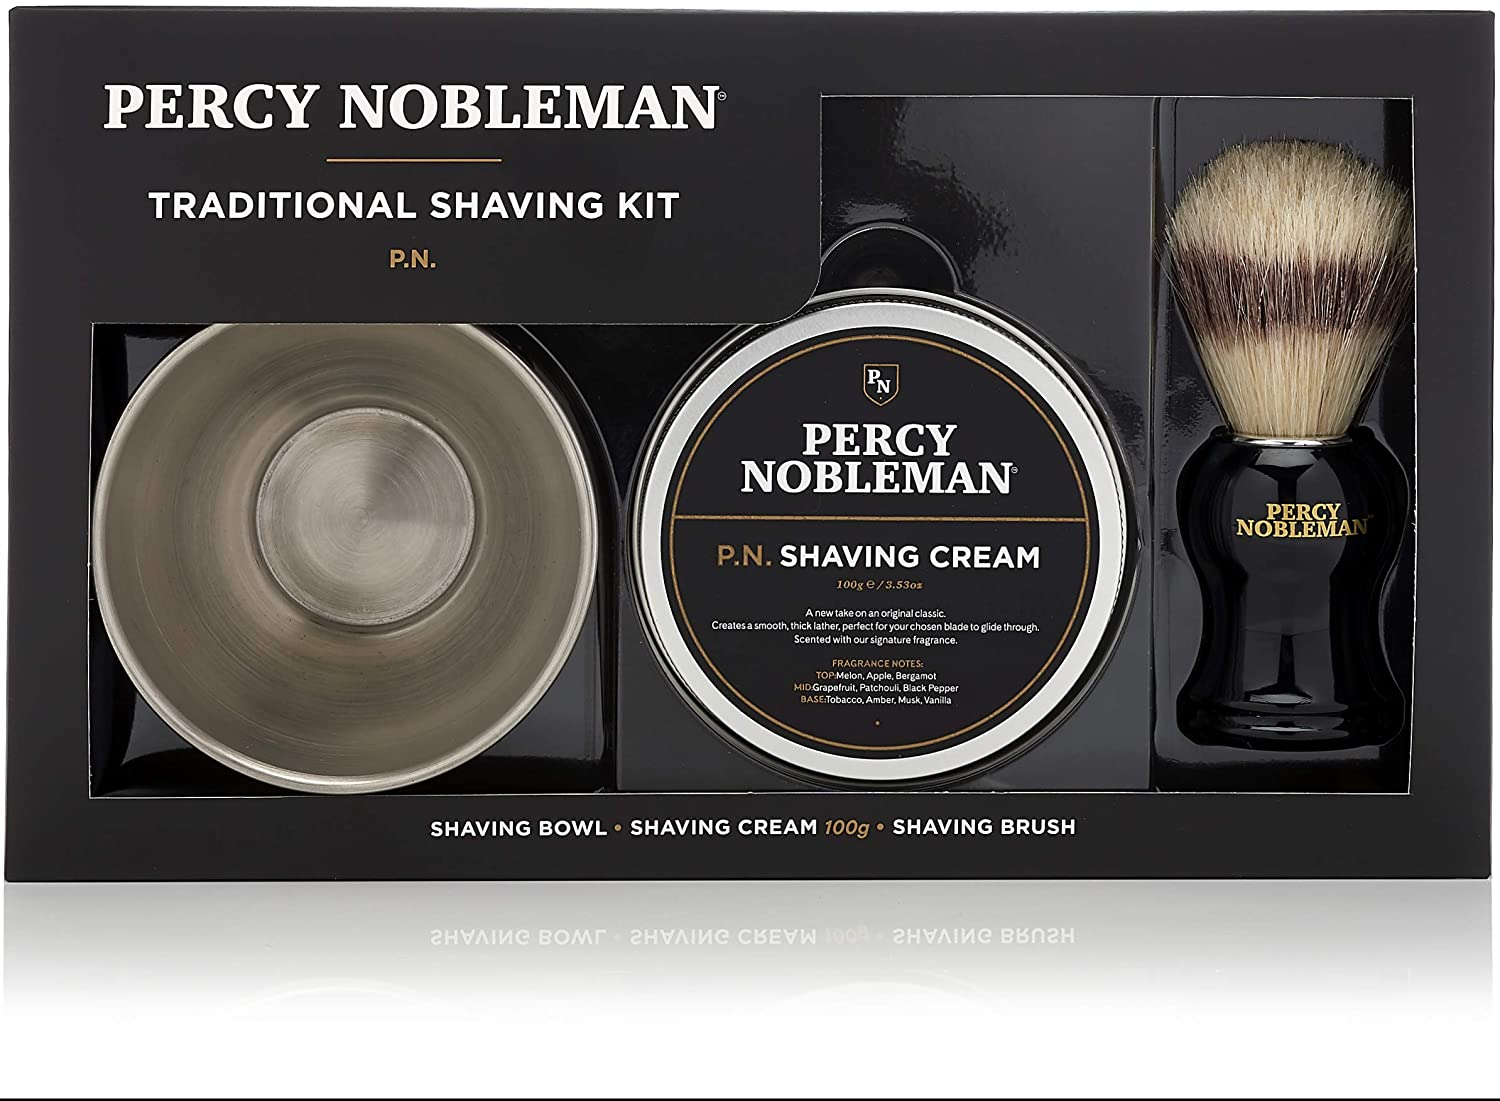 Percy Nobleman Traditional Shaving Kit.